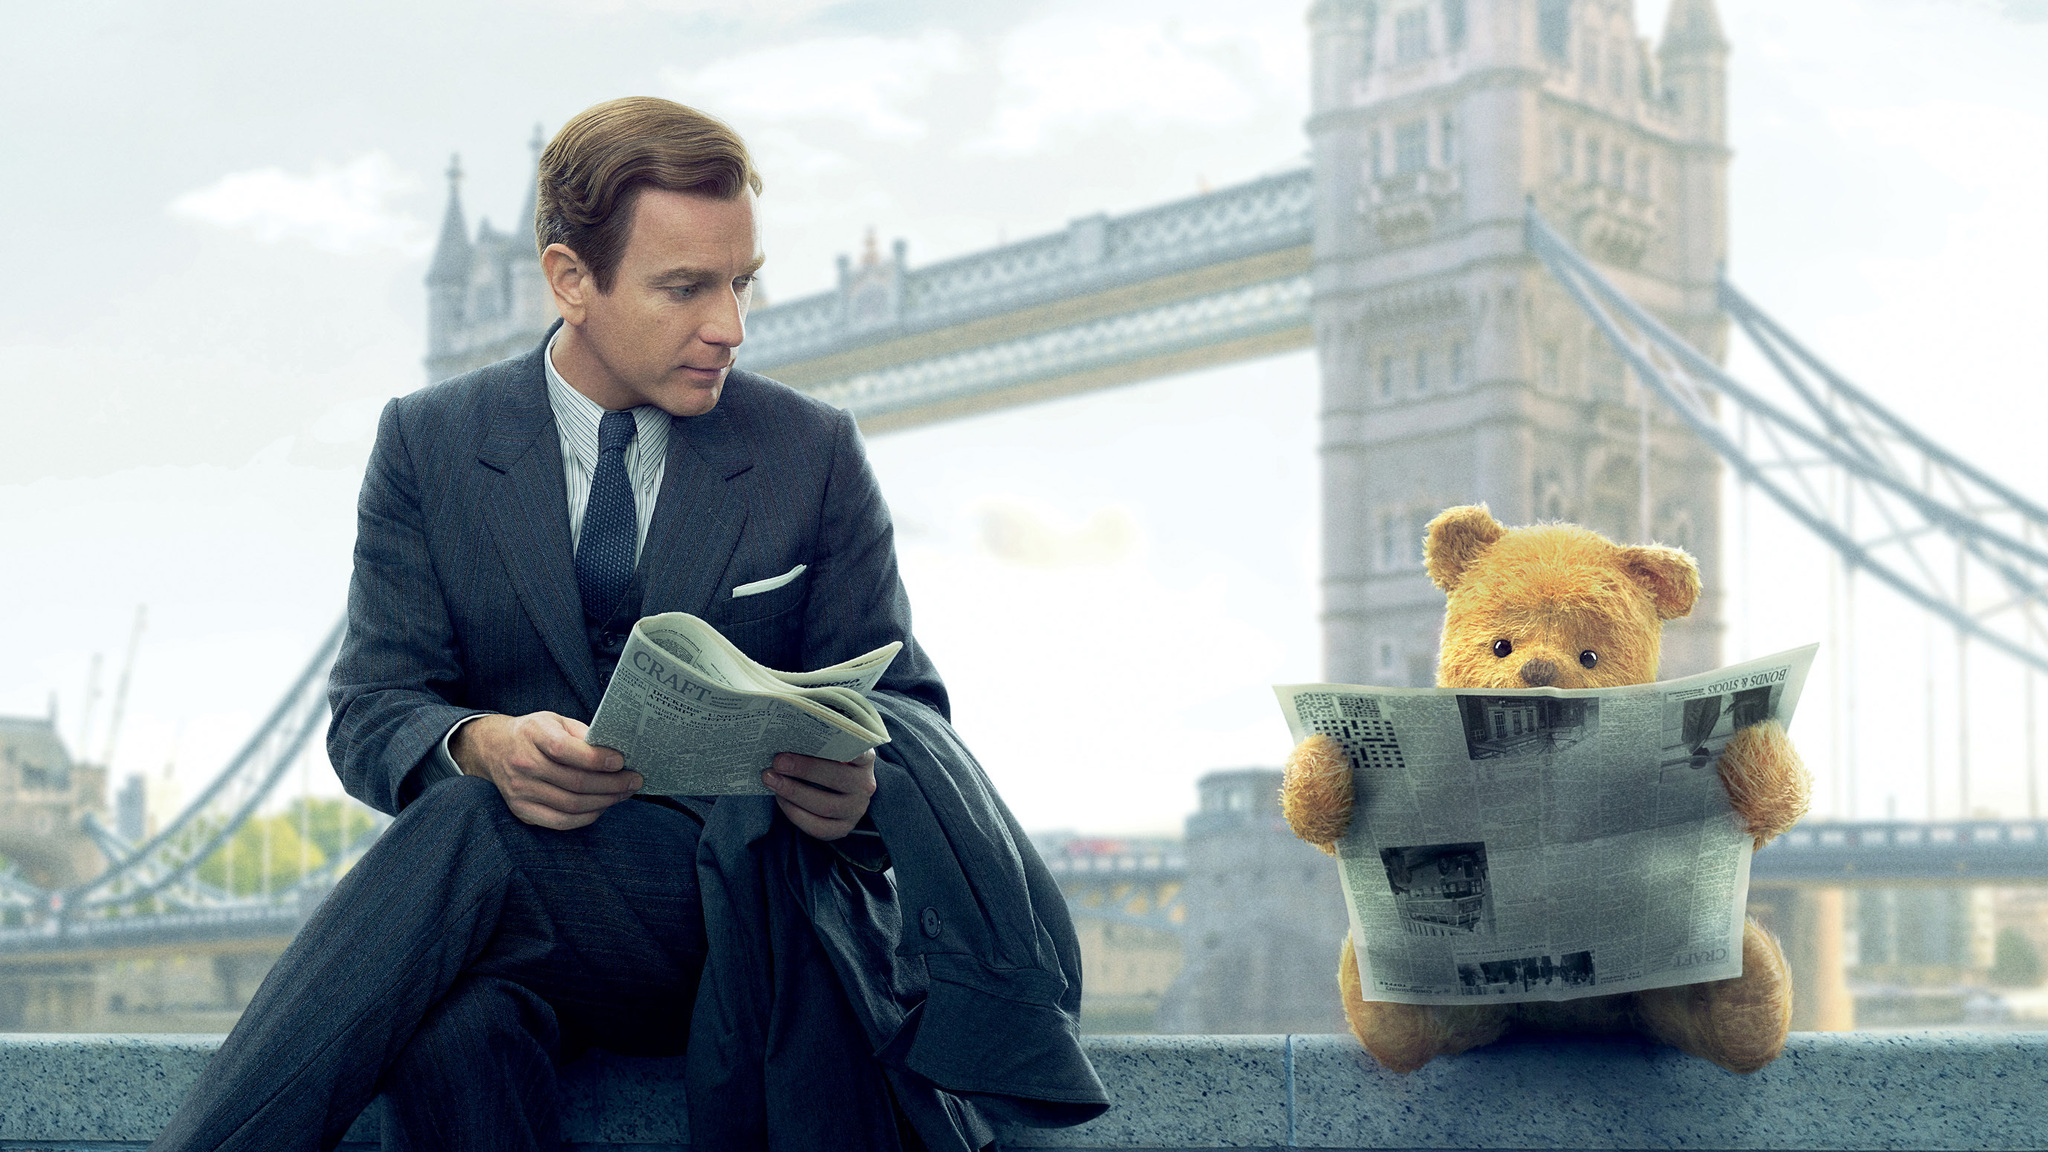 Cute Wallpapers  2048x1152 Christopher Robin 2018 Movie Poster 2048x1152